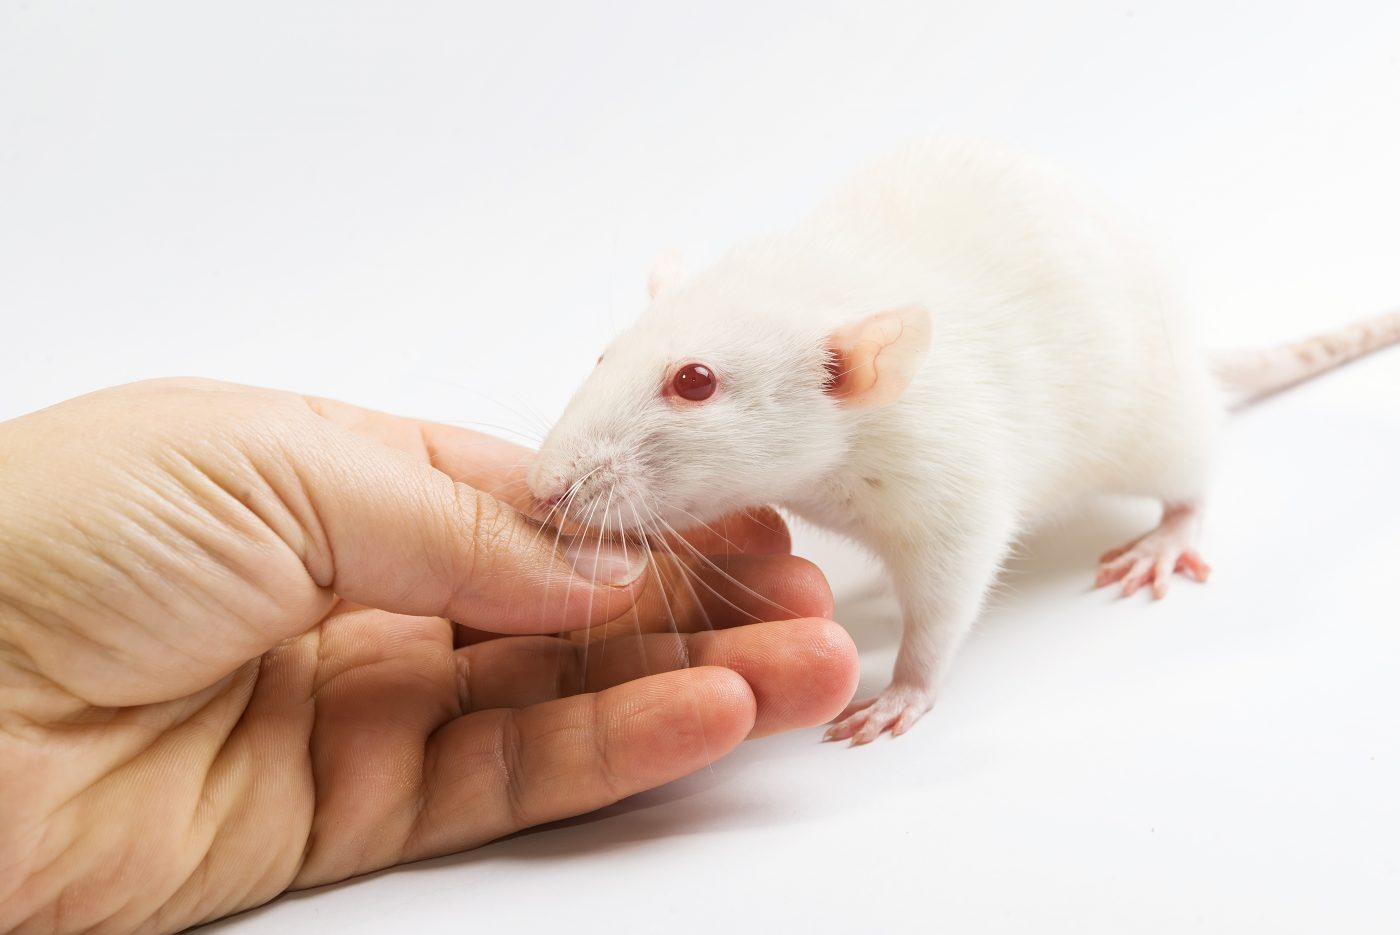 Nanoparticle Drug Approach Proven to be Successful in Reversing Parkinson's-Like Symptoms in Rats